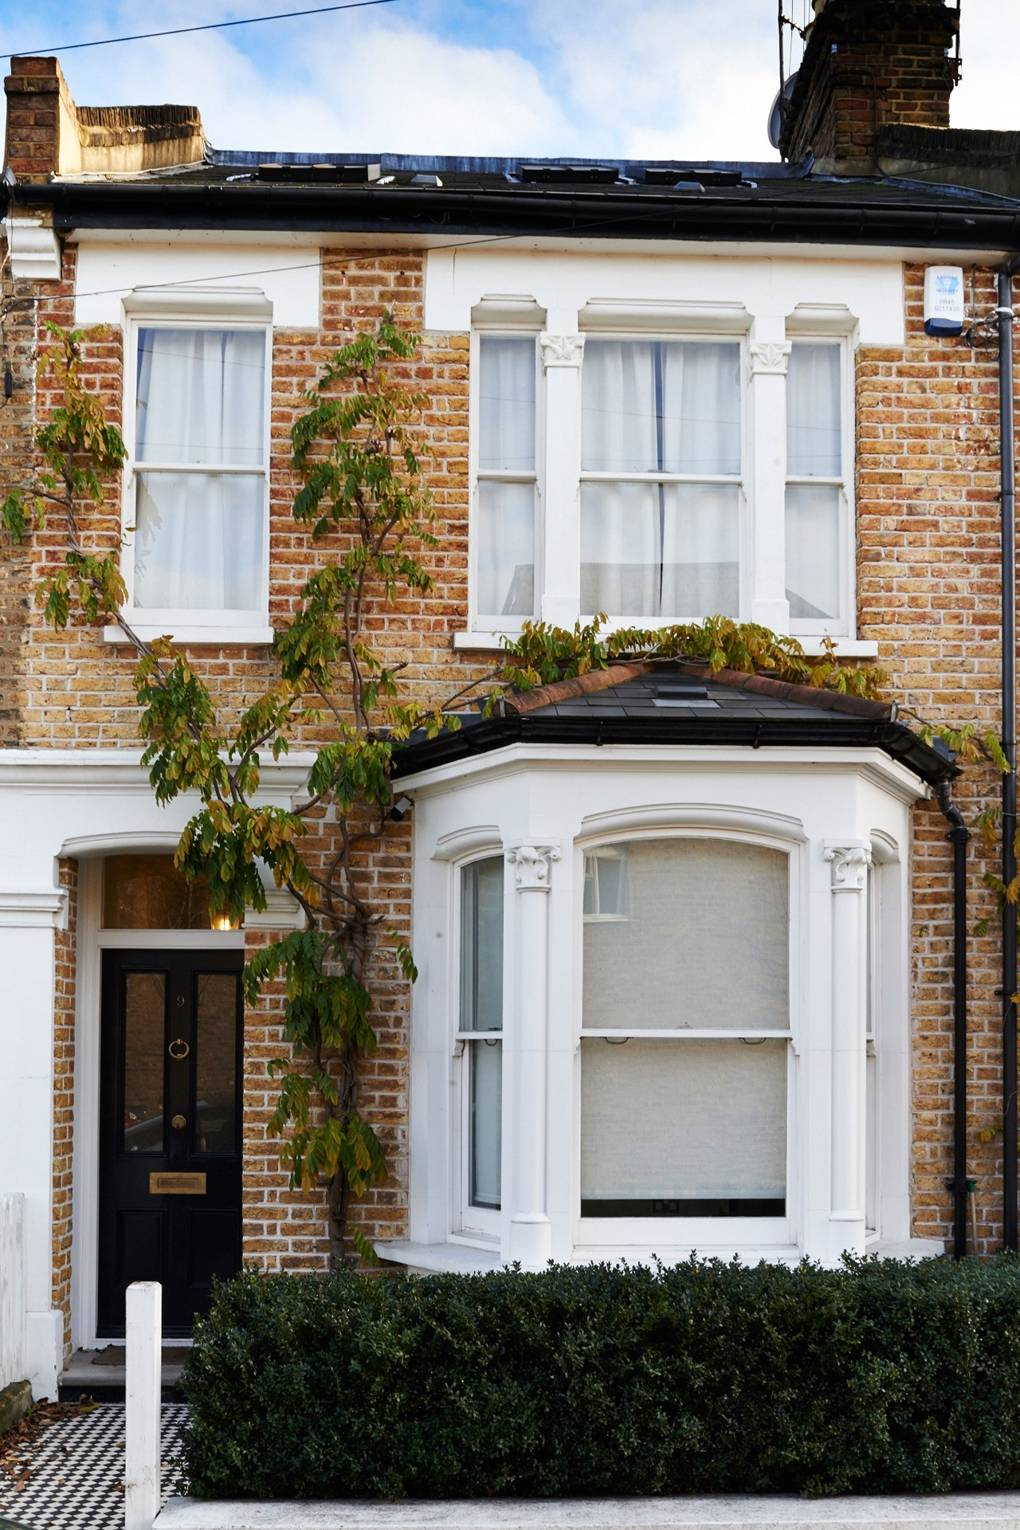 Terraced House Exterior Renovation Before After Design Ideas Garden